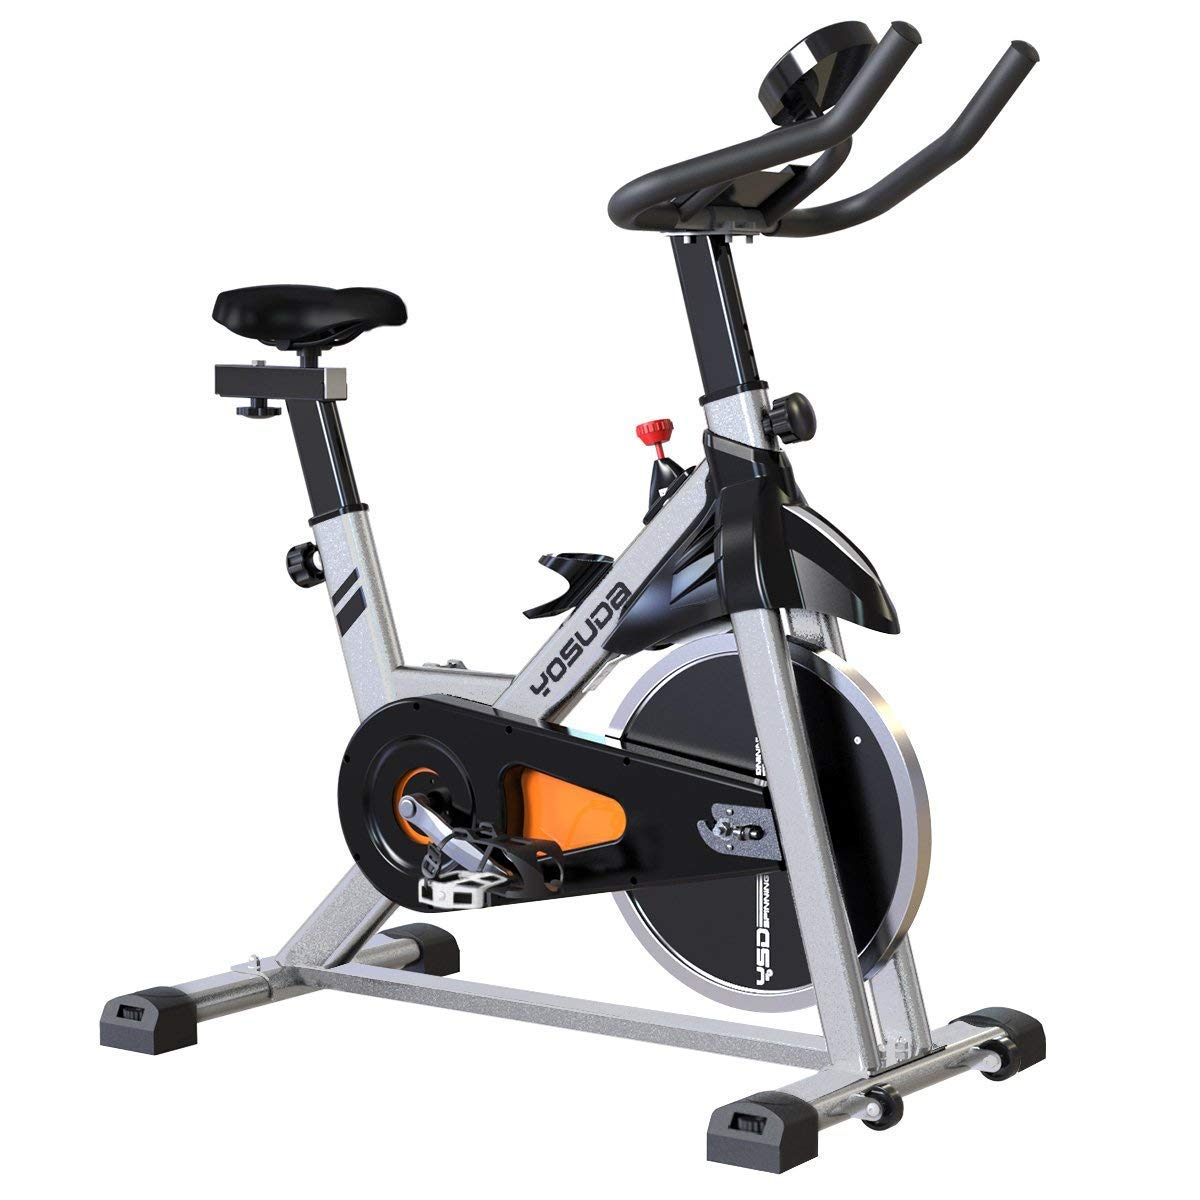 YOSUDA Indoor Cycling Bike Stationary - Cycle Bike with Ipad Mount & Comfortable Seat Cushion